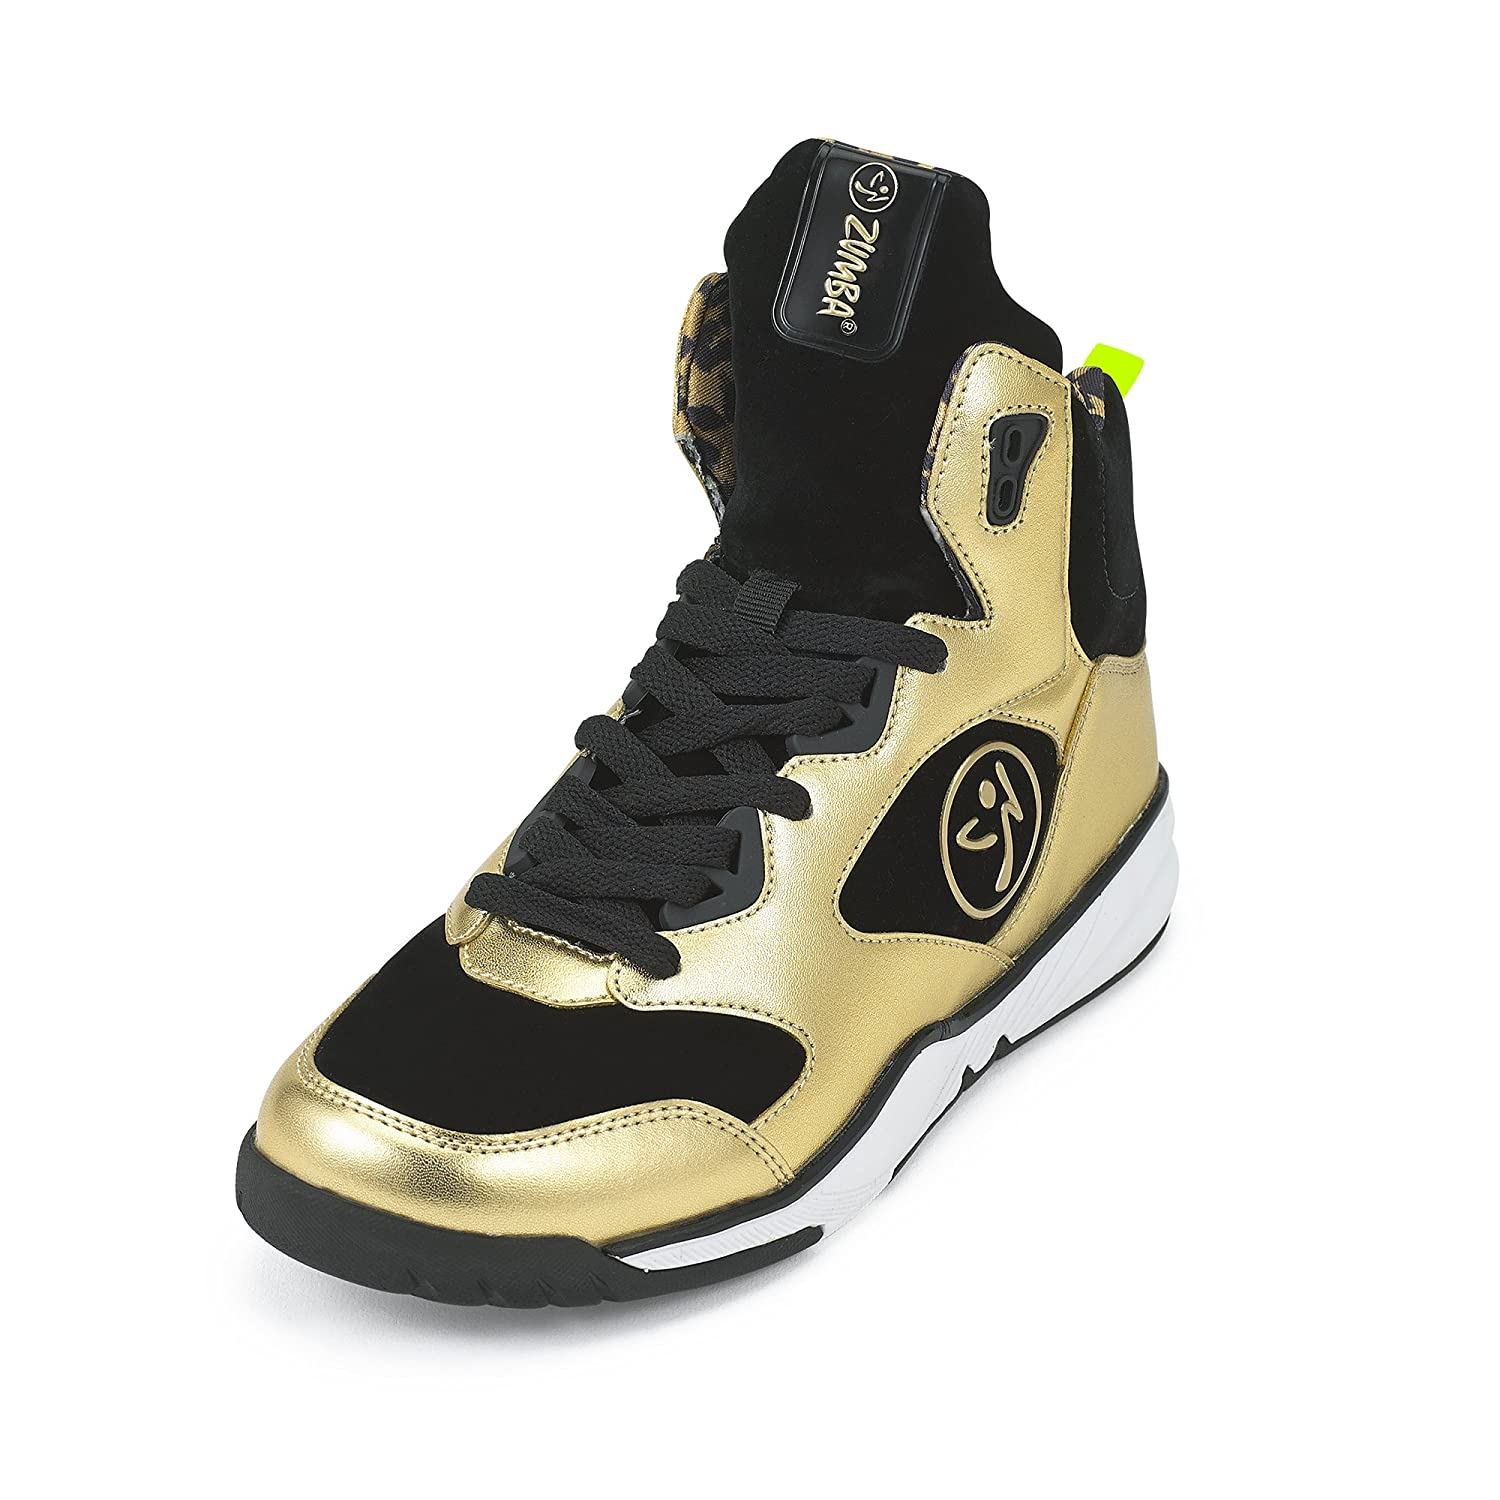 Zumba Women's Energy Boom High Top Dance Workout Sneakers with Enhanced Comfort Support B0744QMW1D 11 B(M) US|Metallic Gold